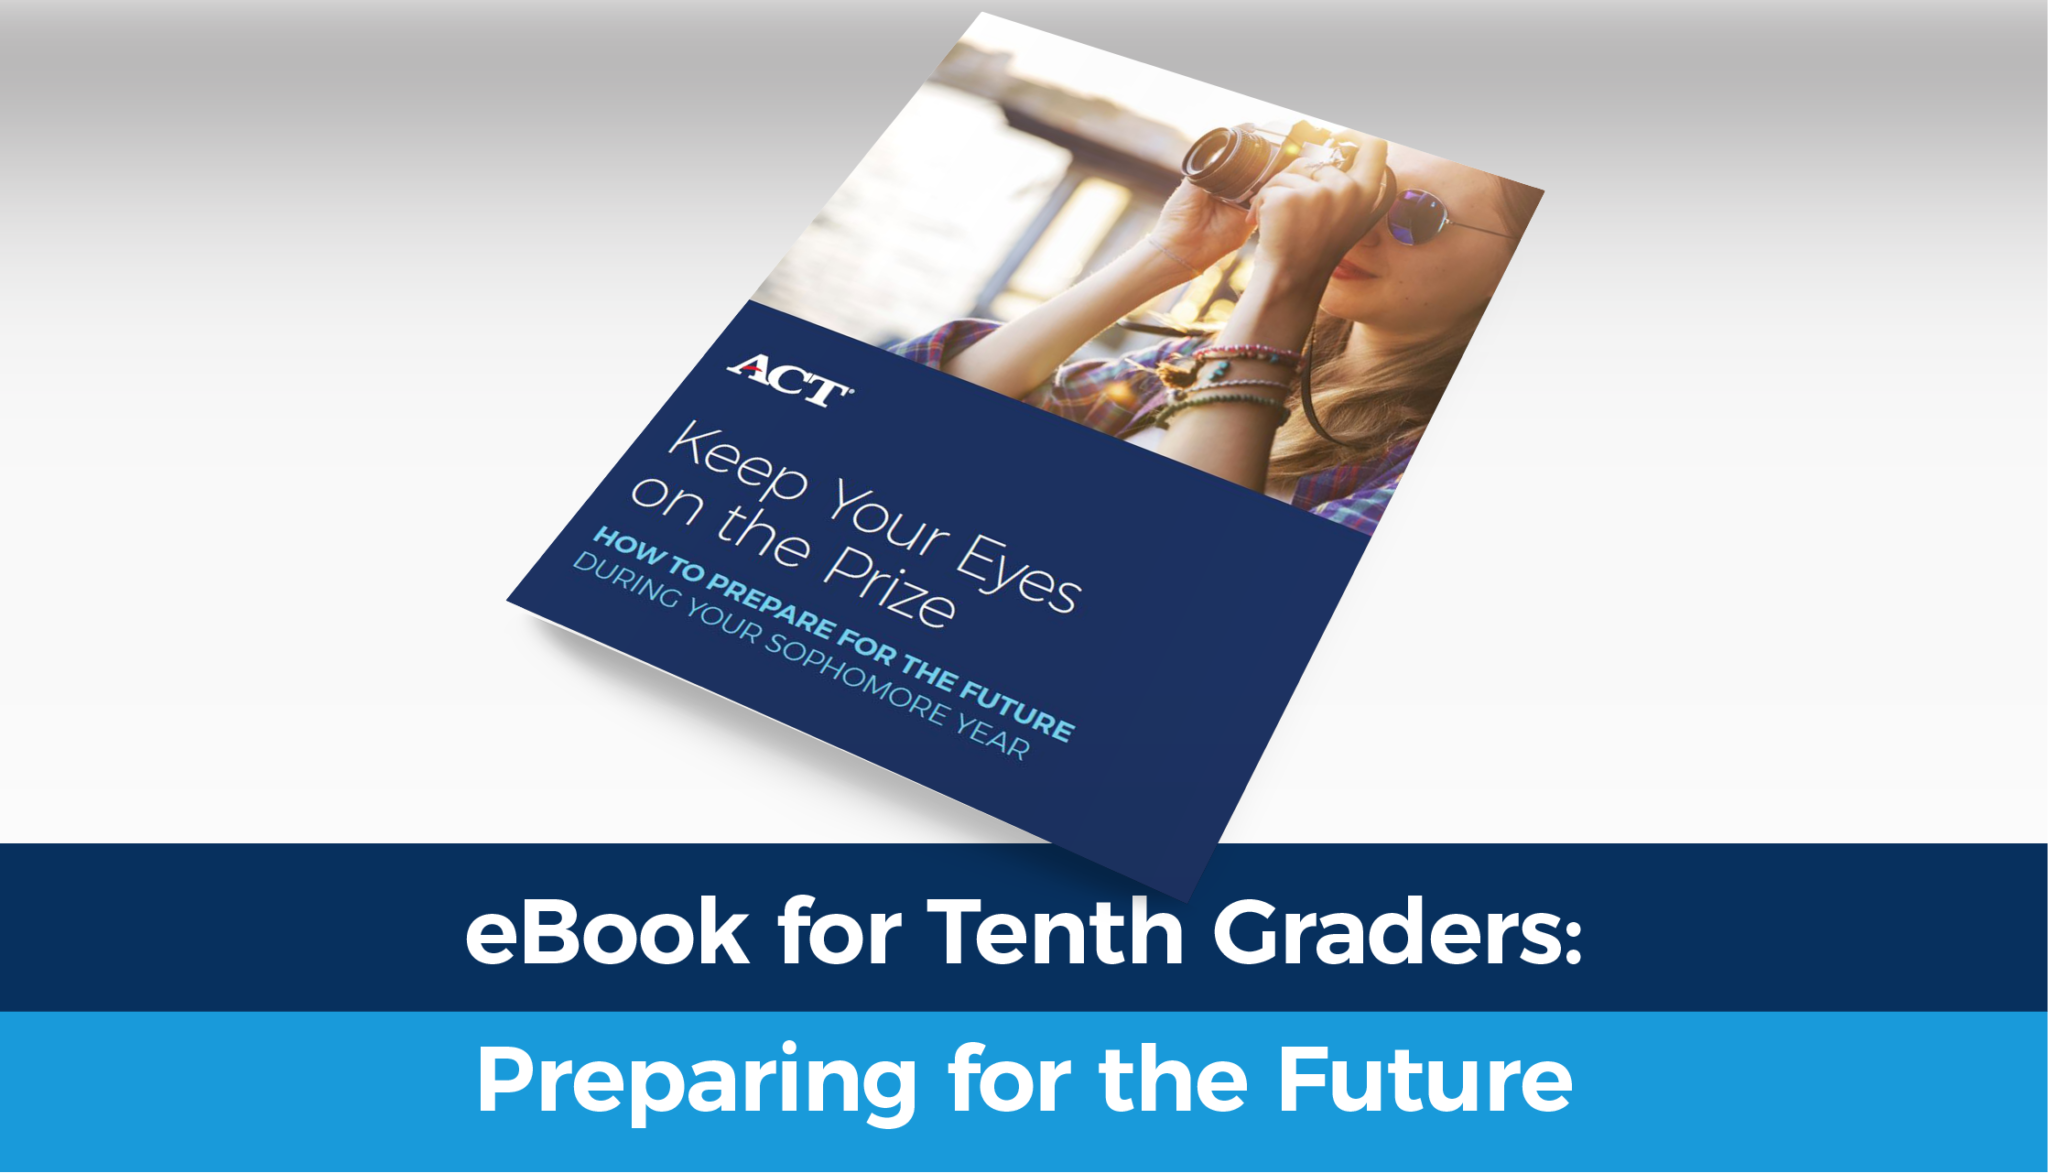 ebook for 10th graders: preparing for the future